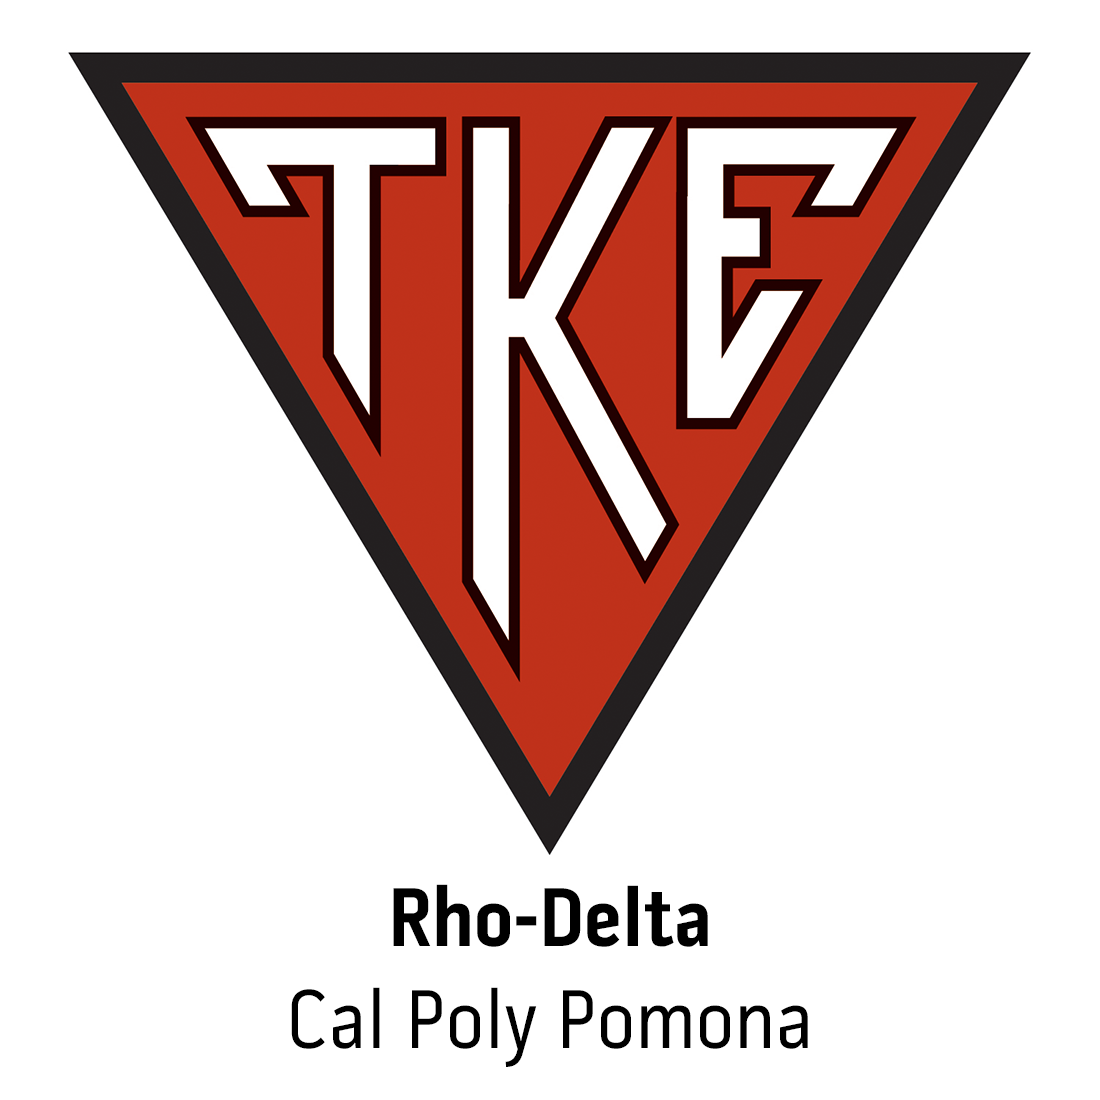 Rho-Delta Chapter at Cal Poly Pomona